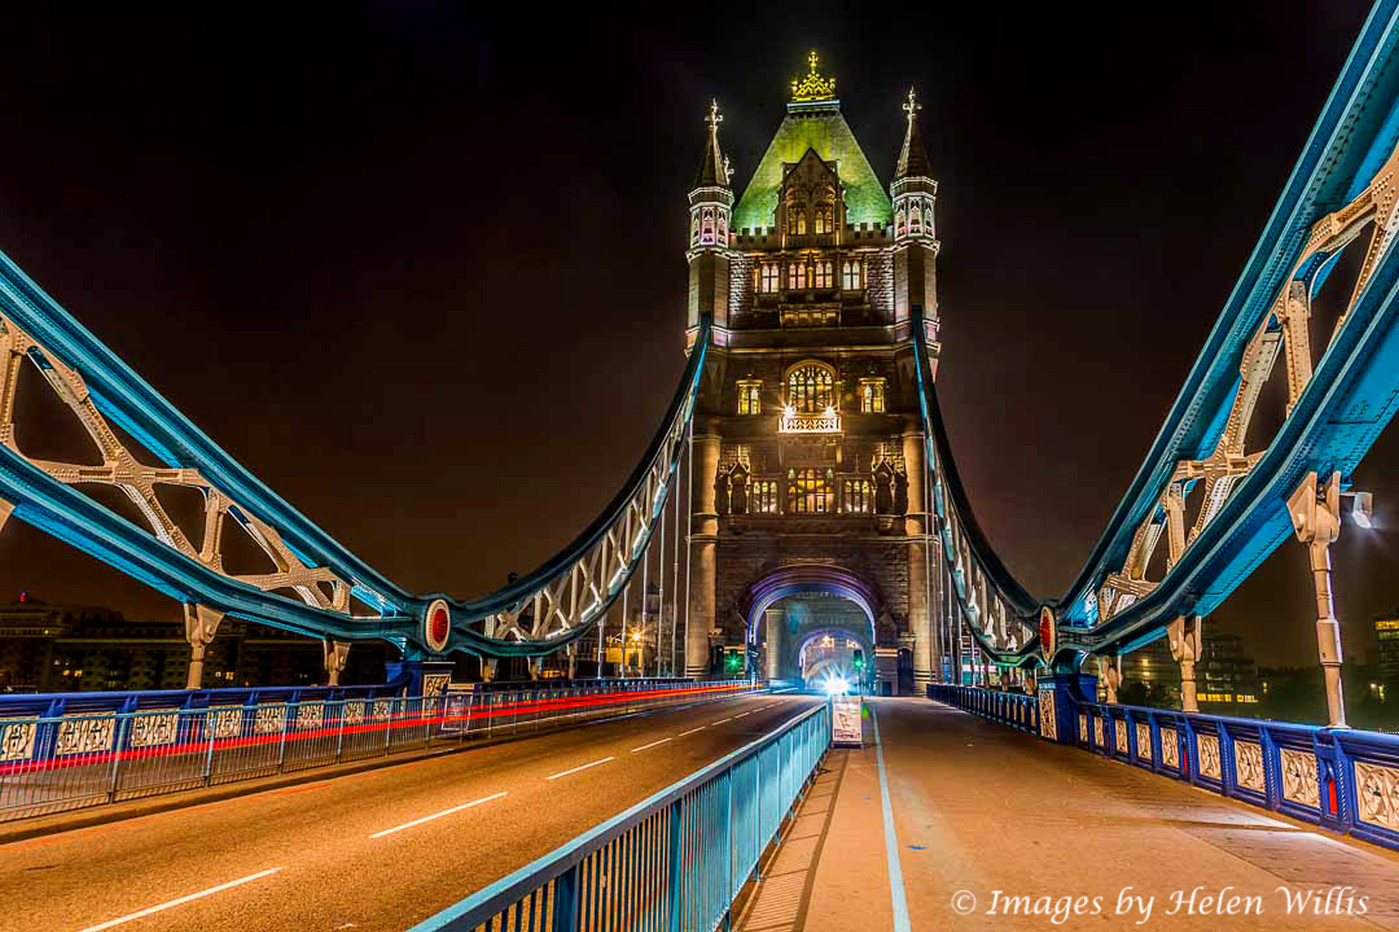 Tower Bridge at 3am